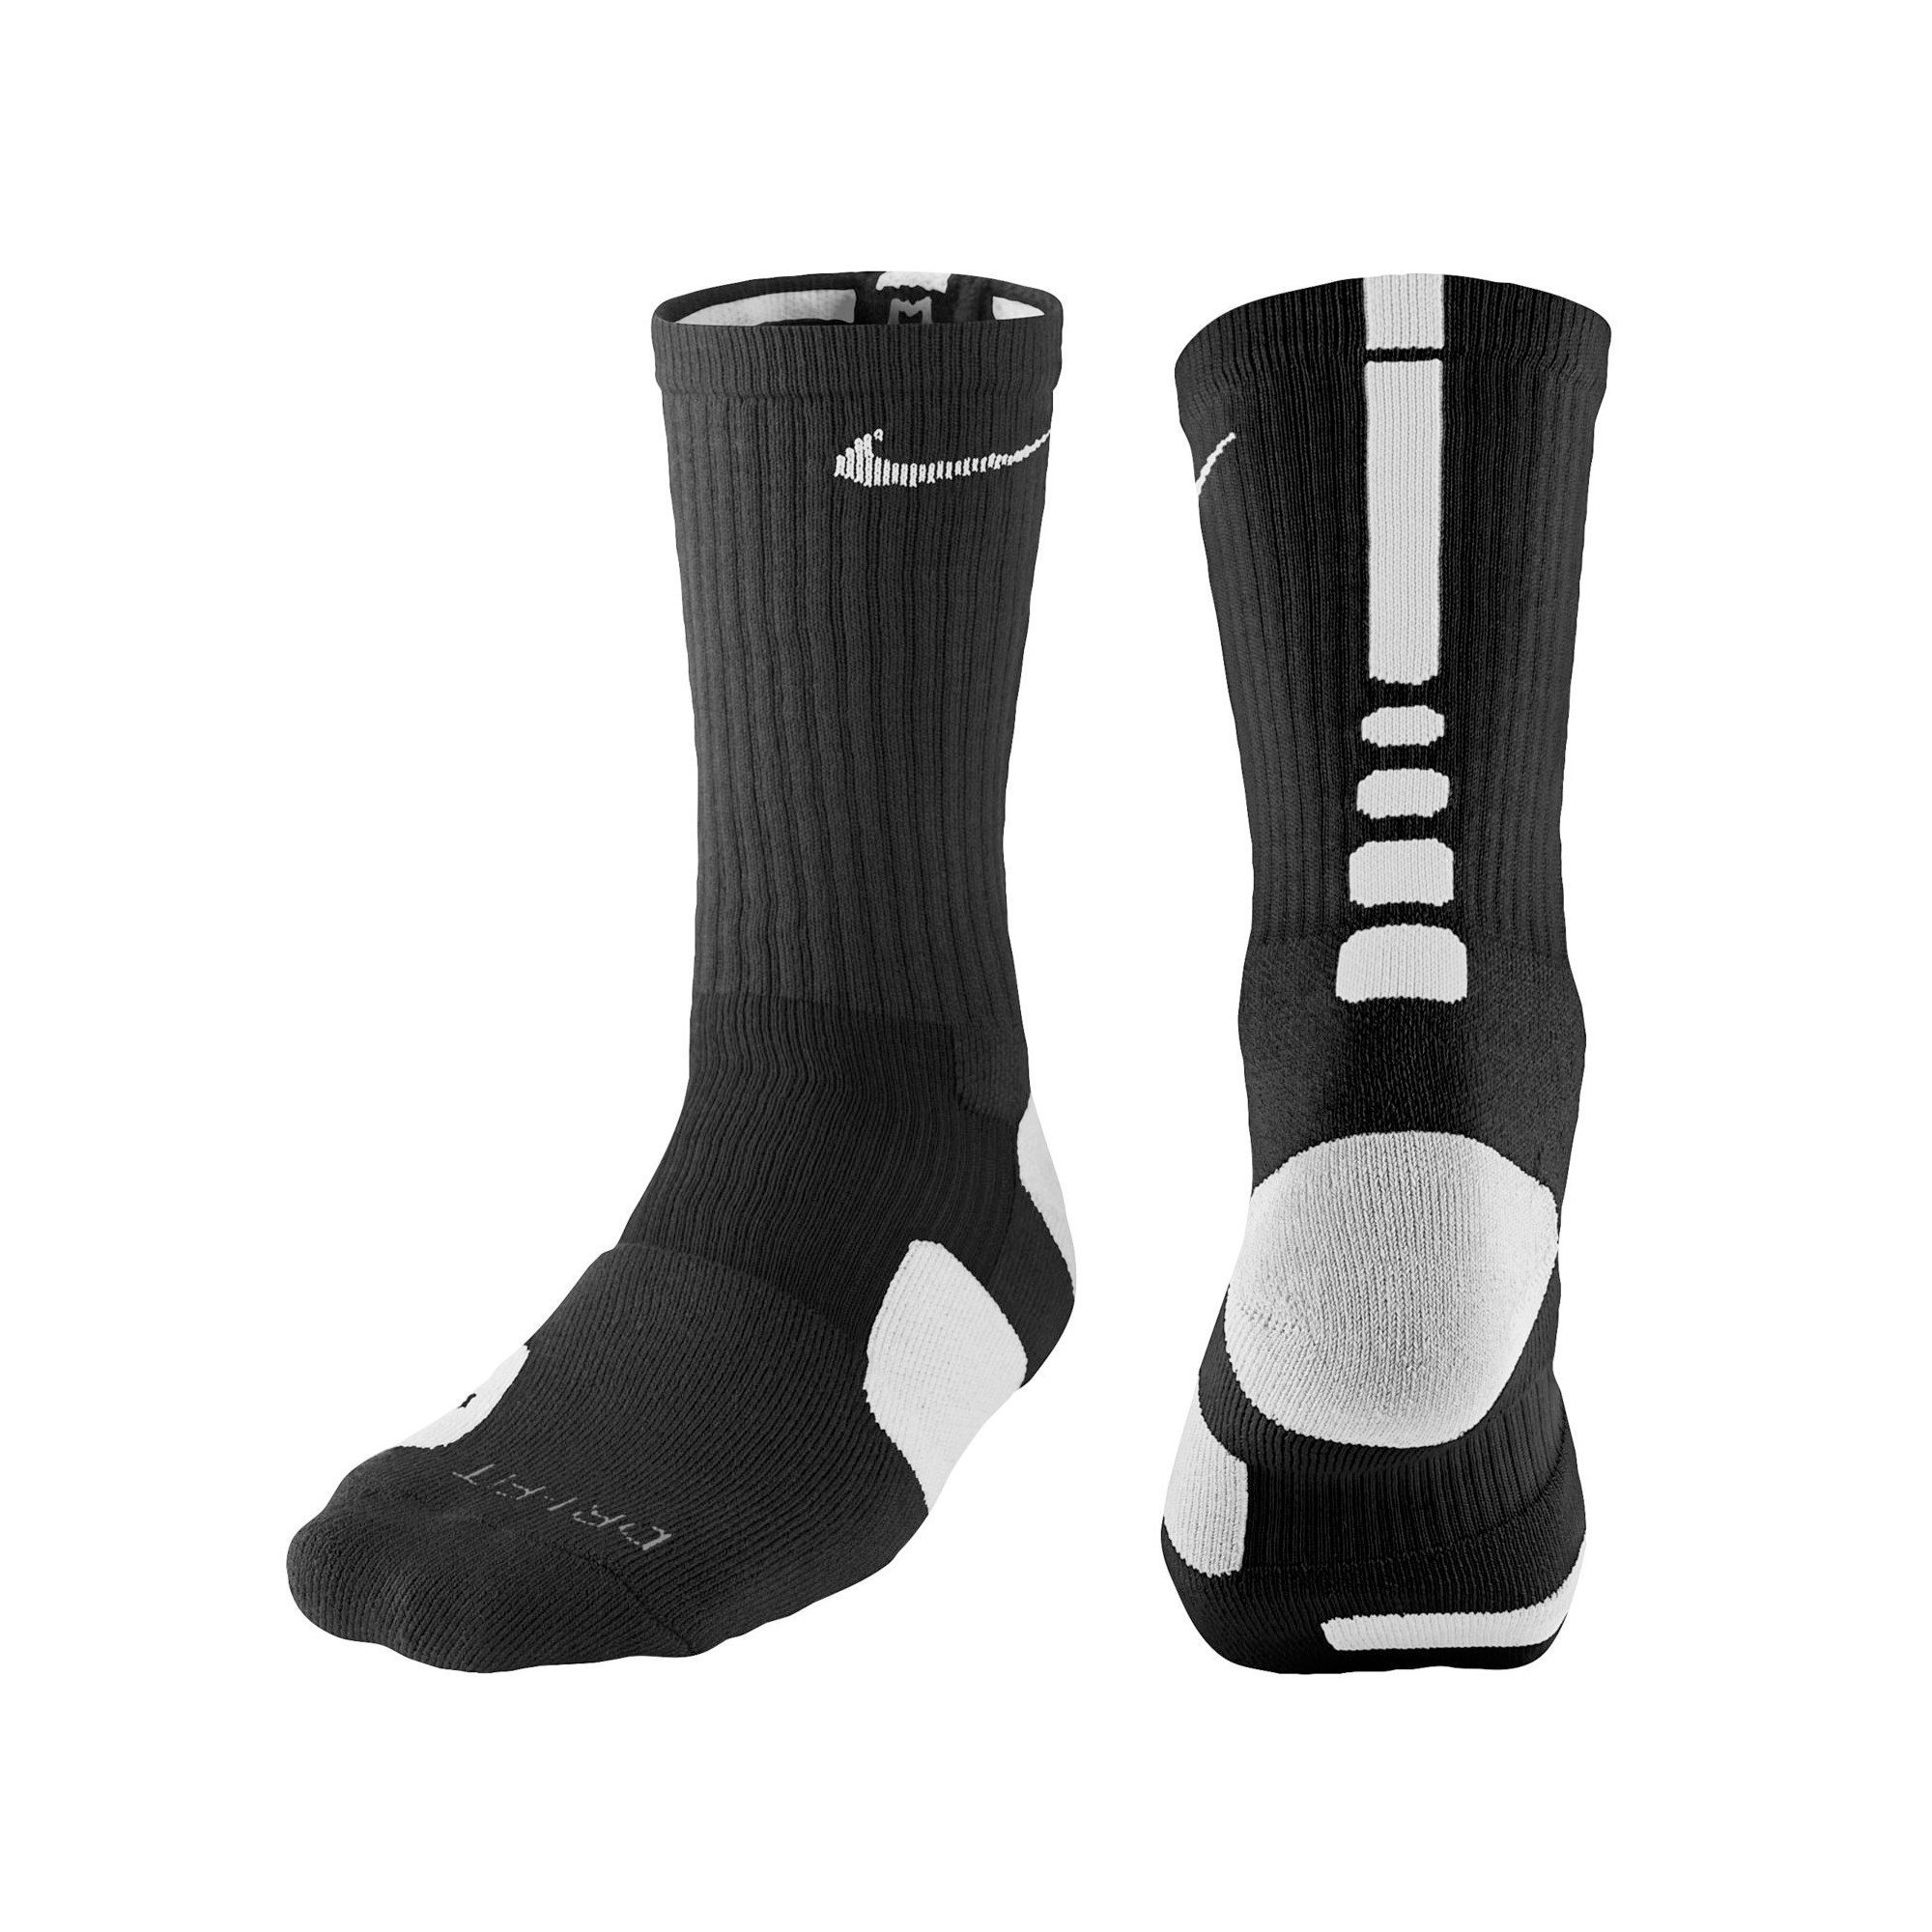 Nike Elite 1.0 Crew Basketball Socks - Black/Grey